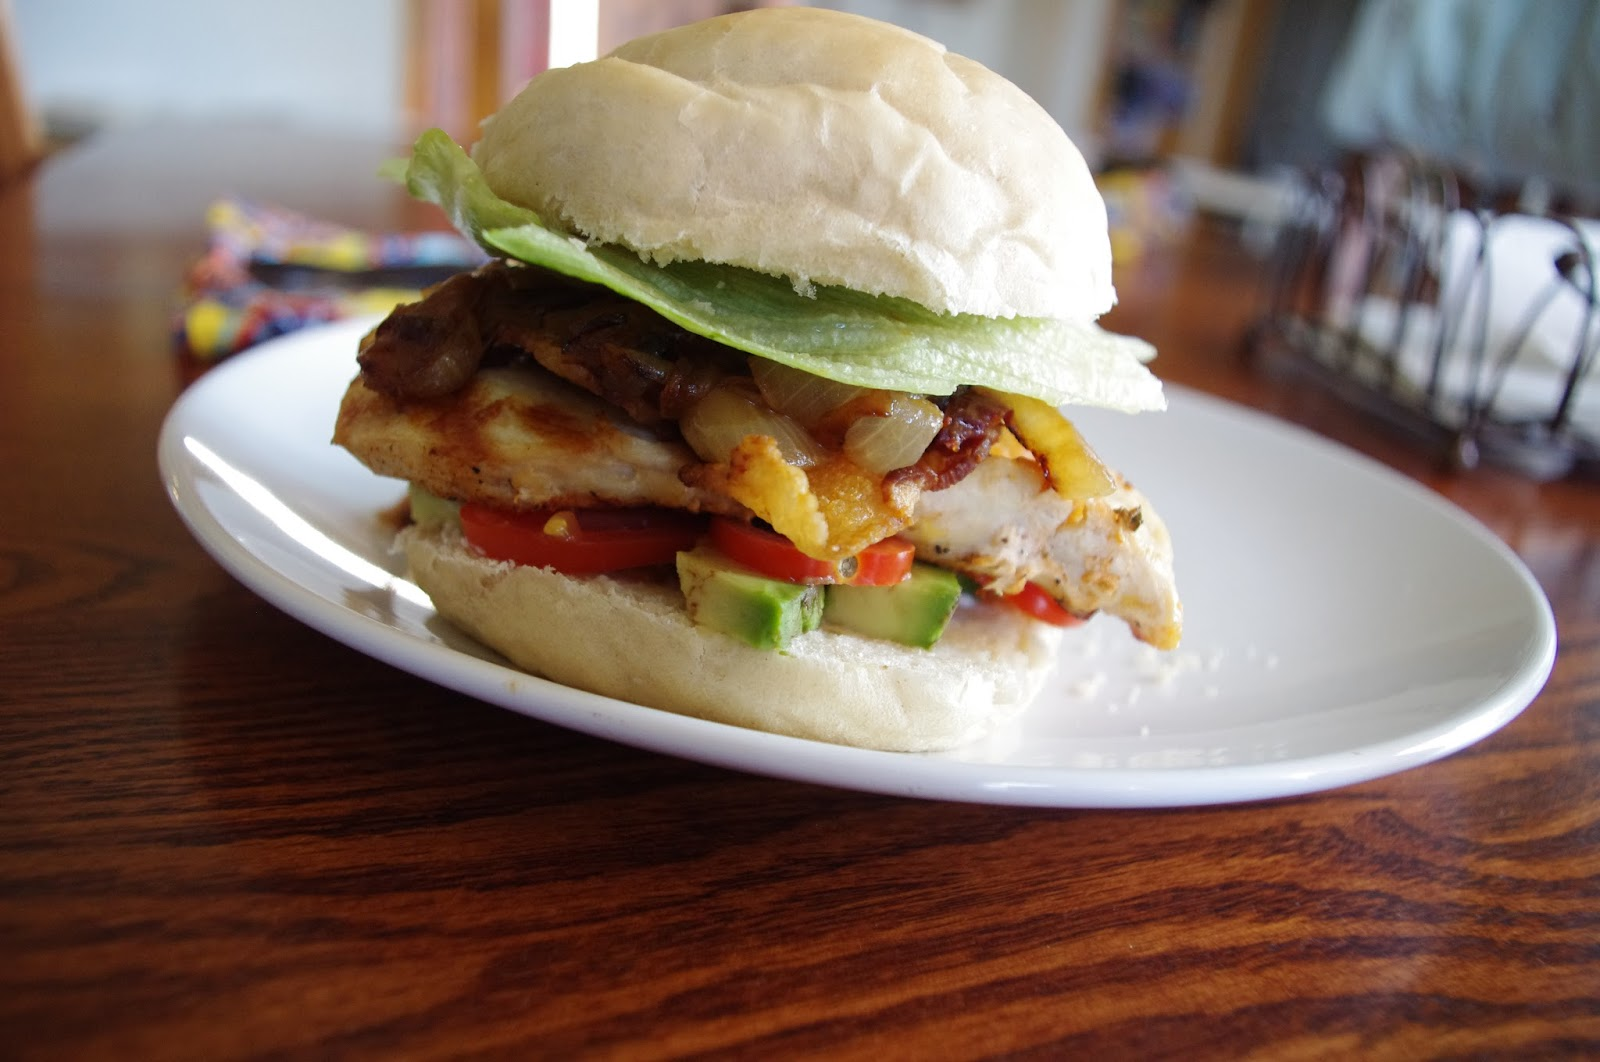 Let's Eat!: Grilled Chicken Club Sandwich